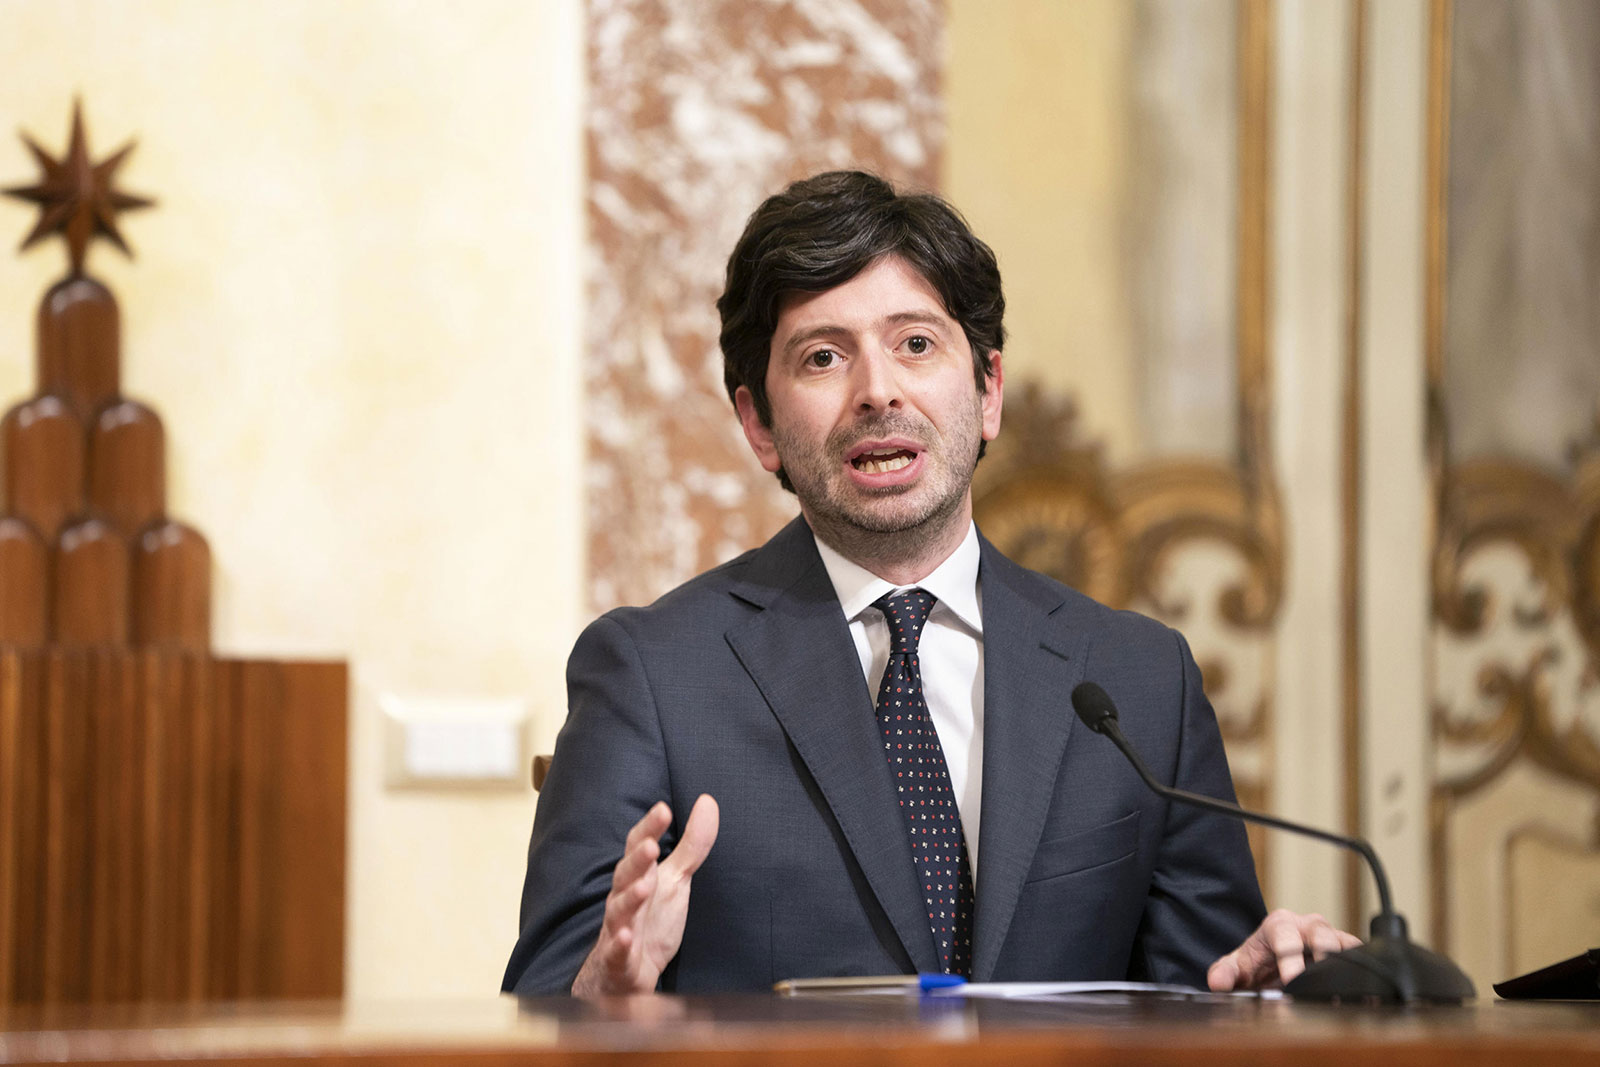 Italian Health Minister Roberto Speranza says the country's economy and society need to reopen after 10 weeks of confinement.